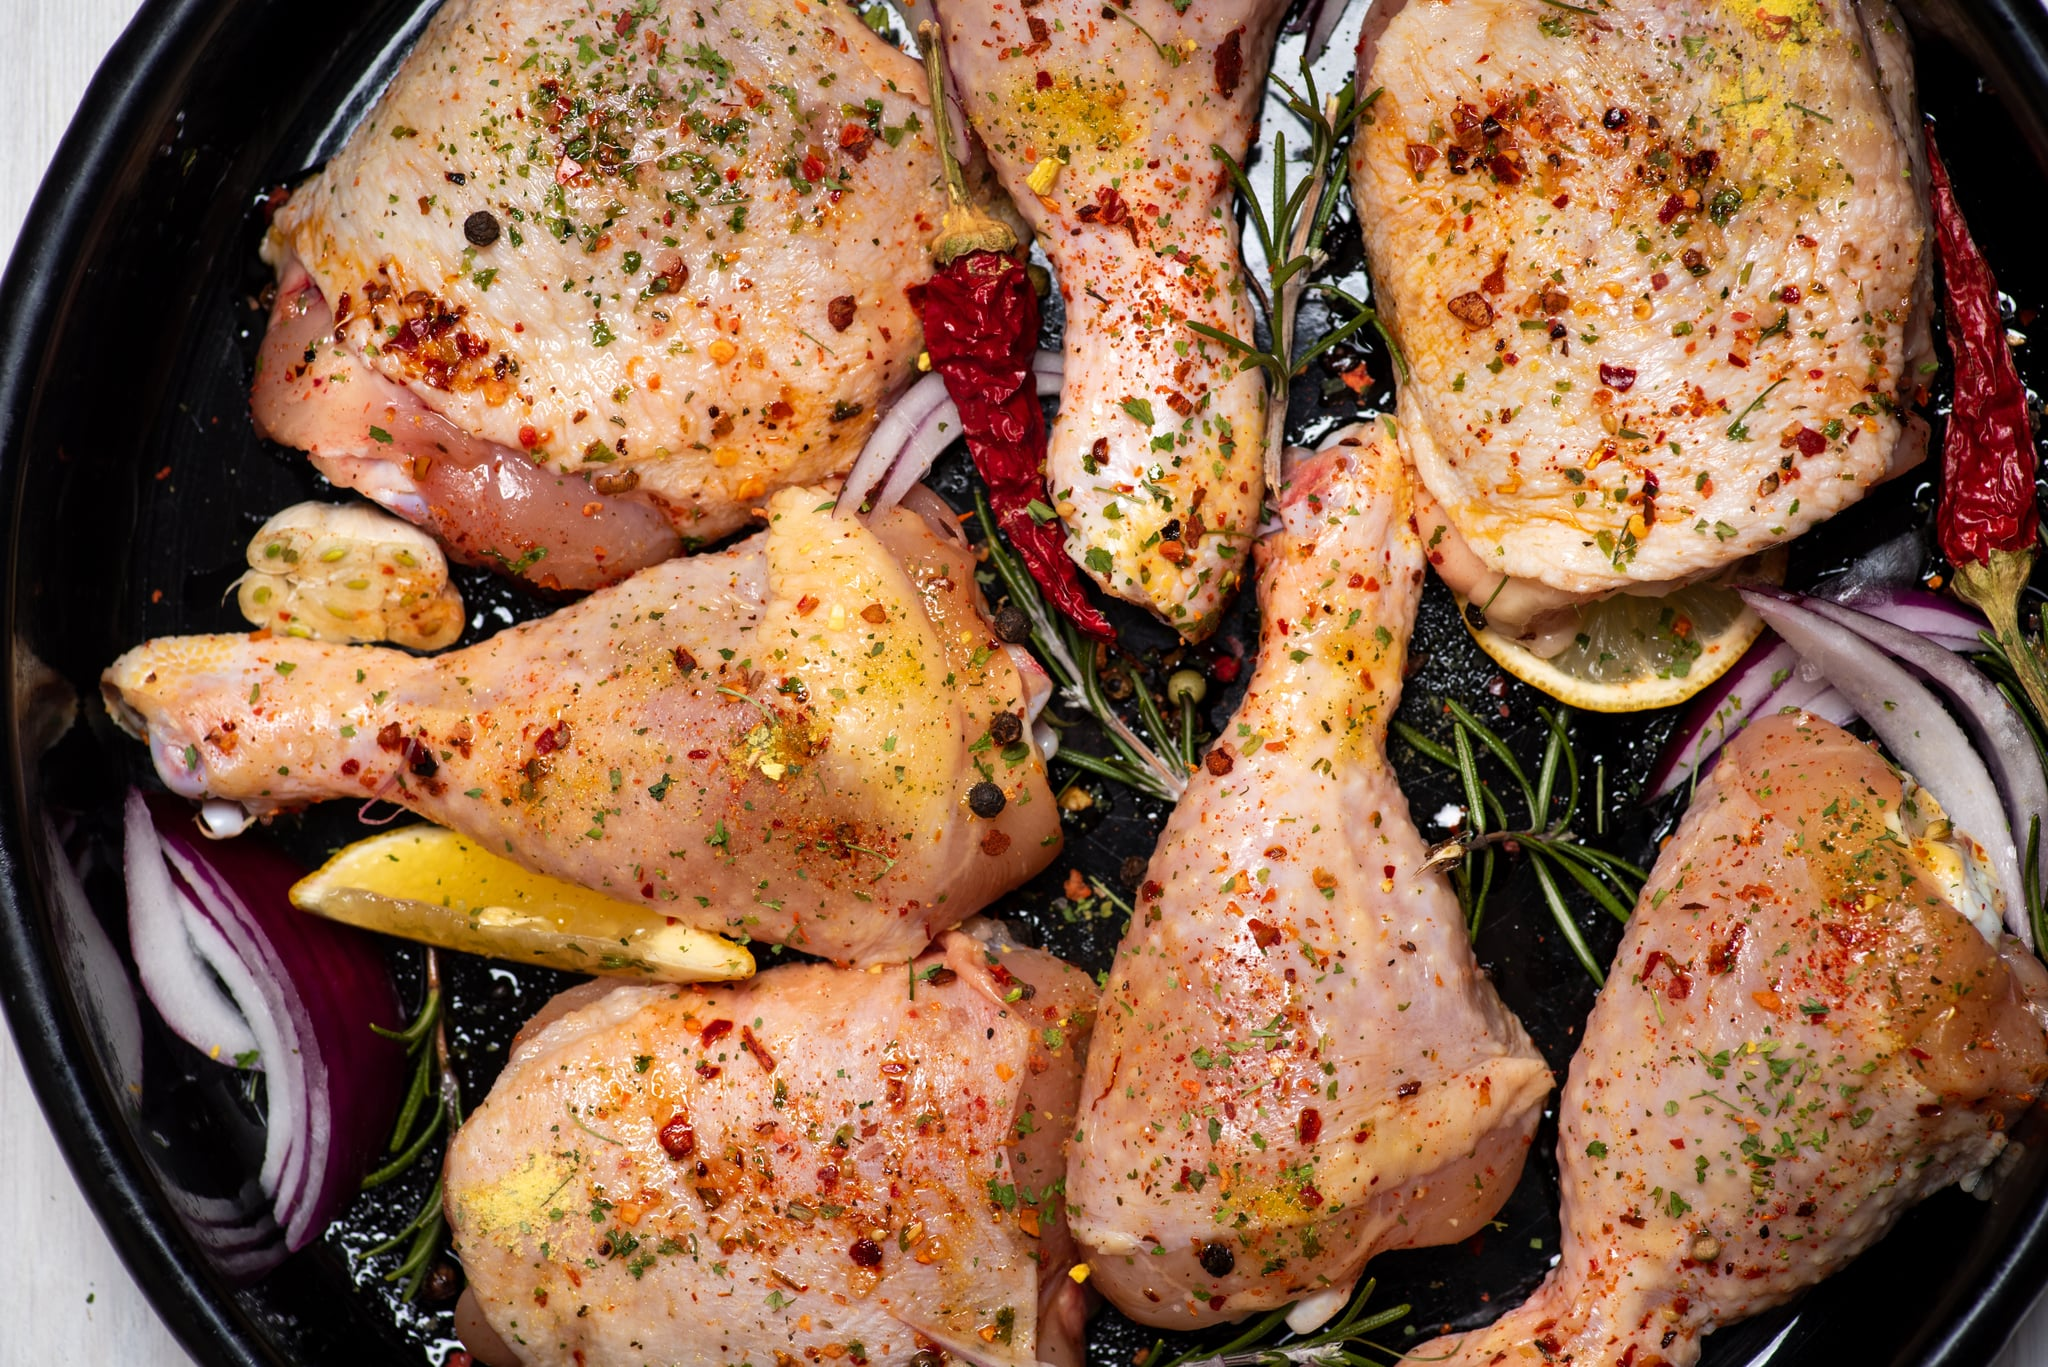 Raw uncooked chicken legs marinated with with spices and ingredients ready for cooking